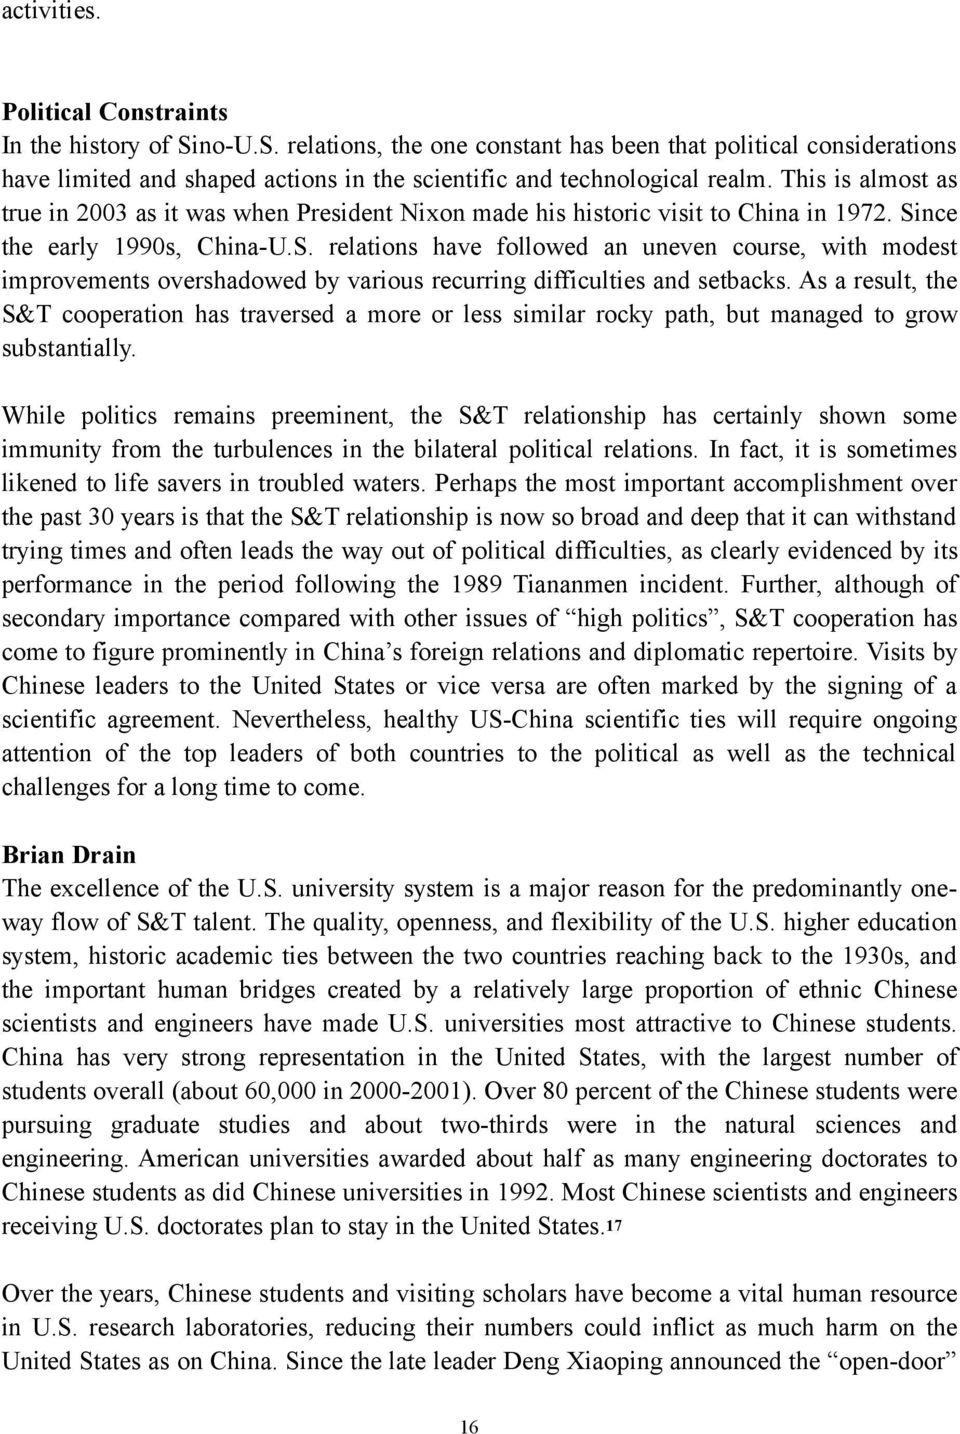 nce the early 1990s, China-U.S. relations have followed an uneven course, with modest improvements overshadowed by various recurring difficulties and setbacks.